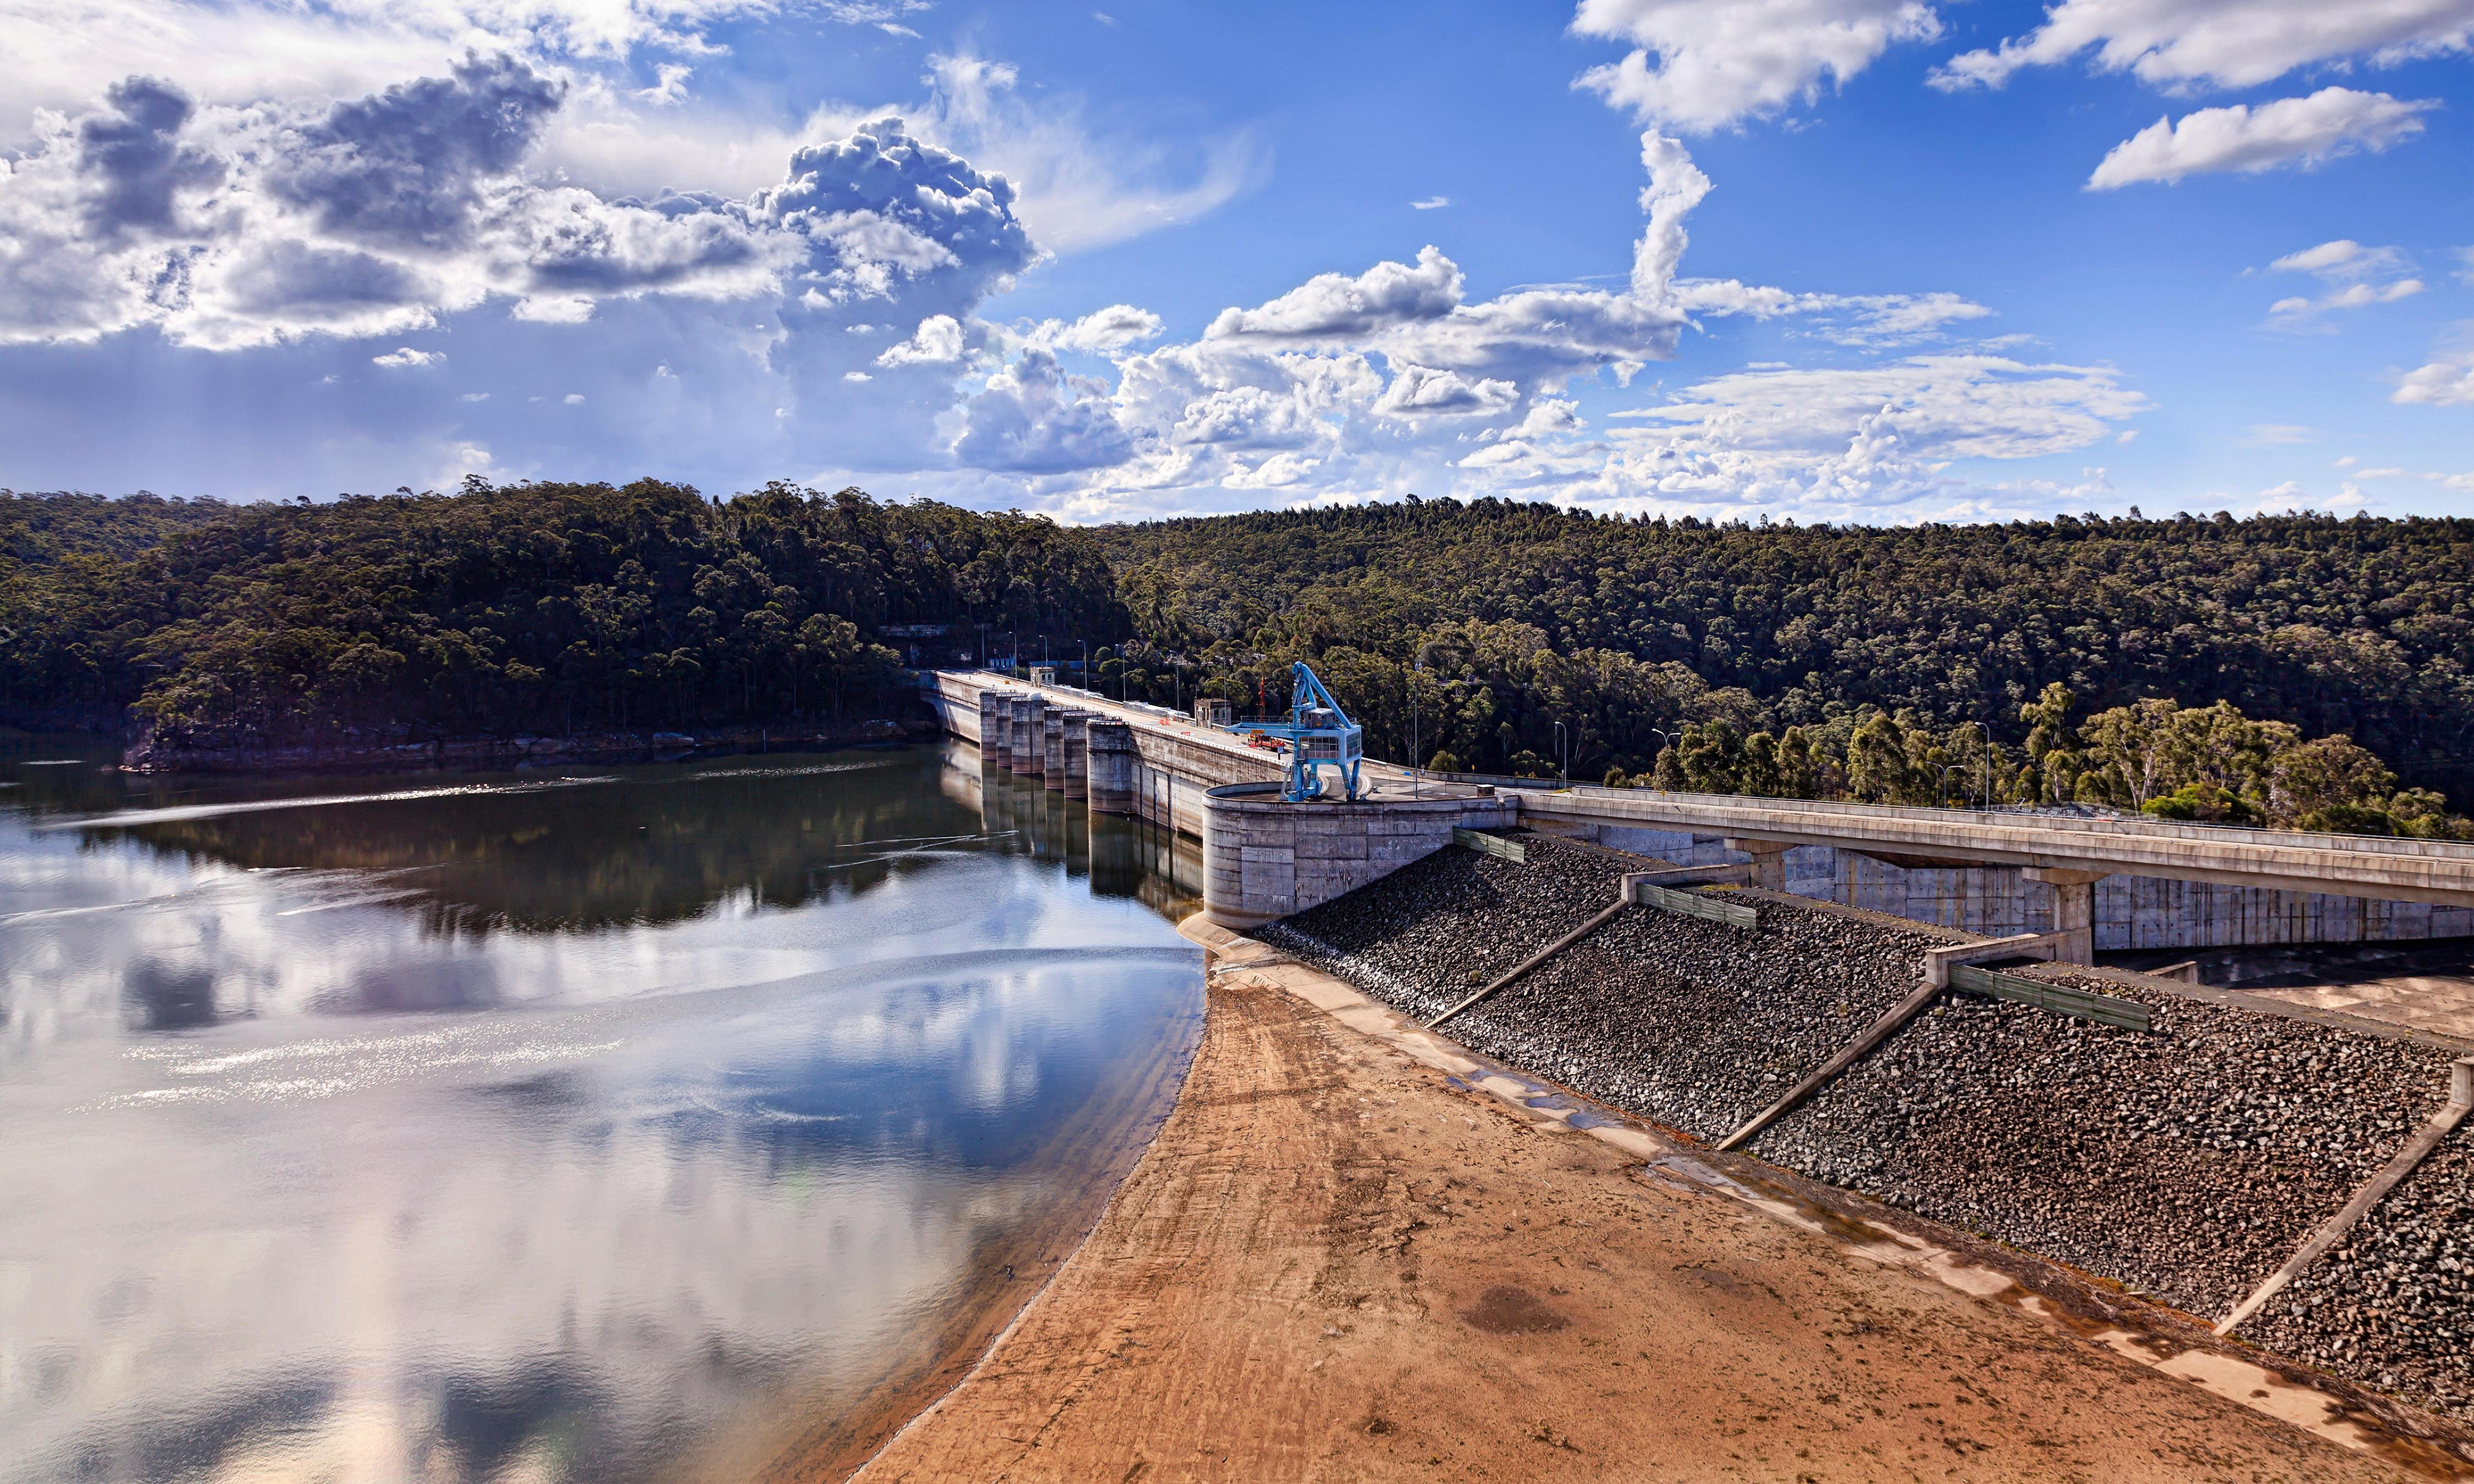 Sydney's main water supply could have increased capacity, but at what environmental and cultural cost?